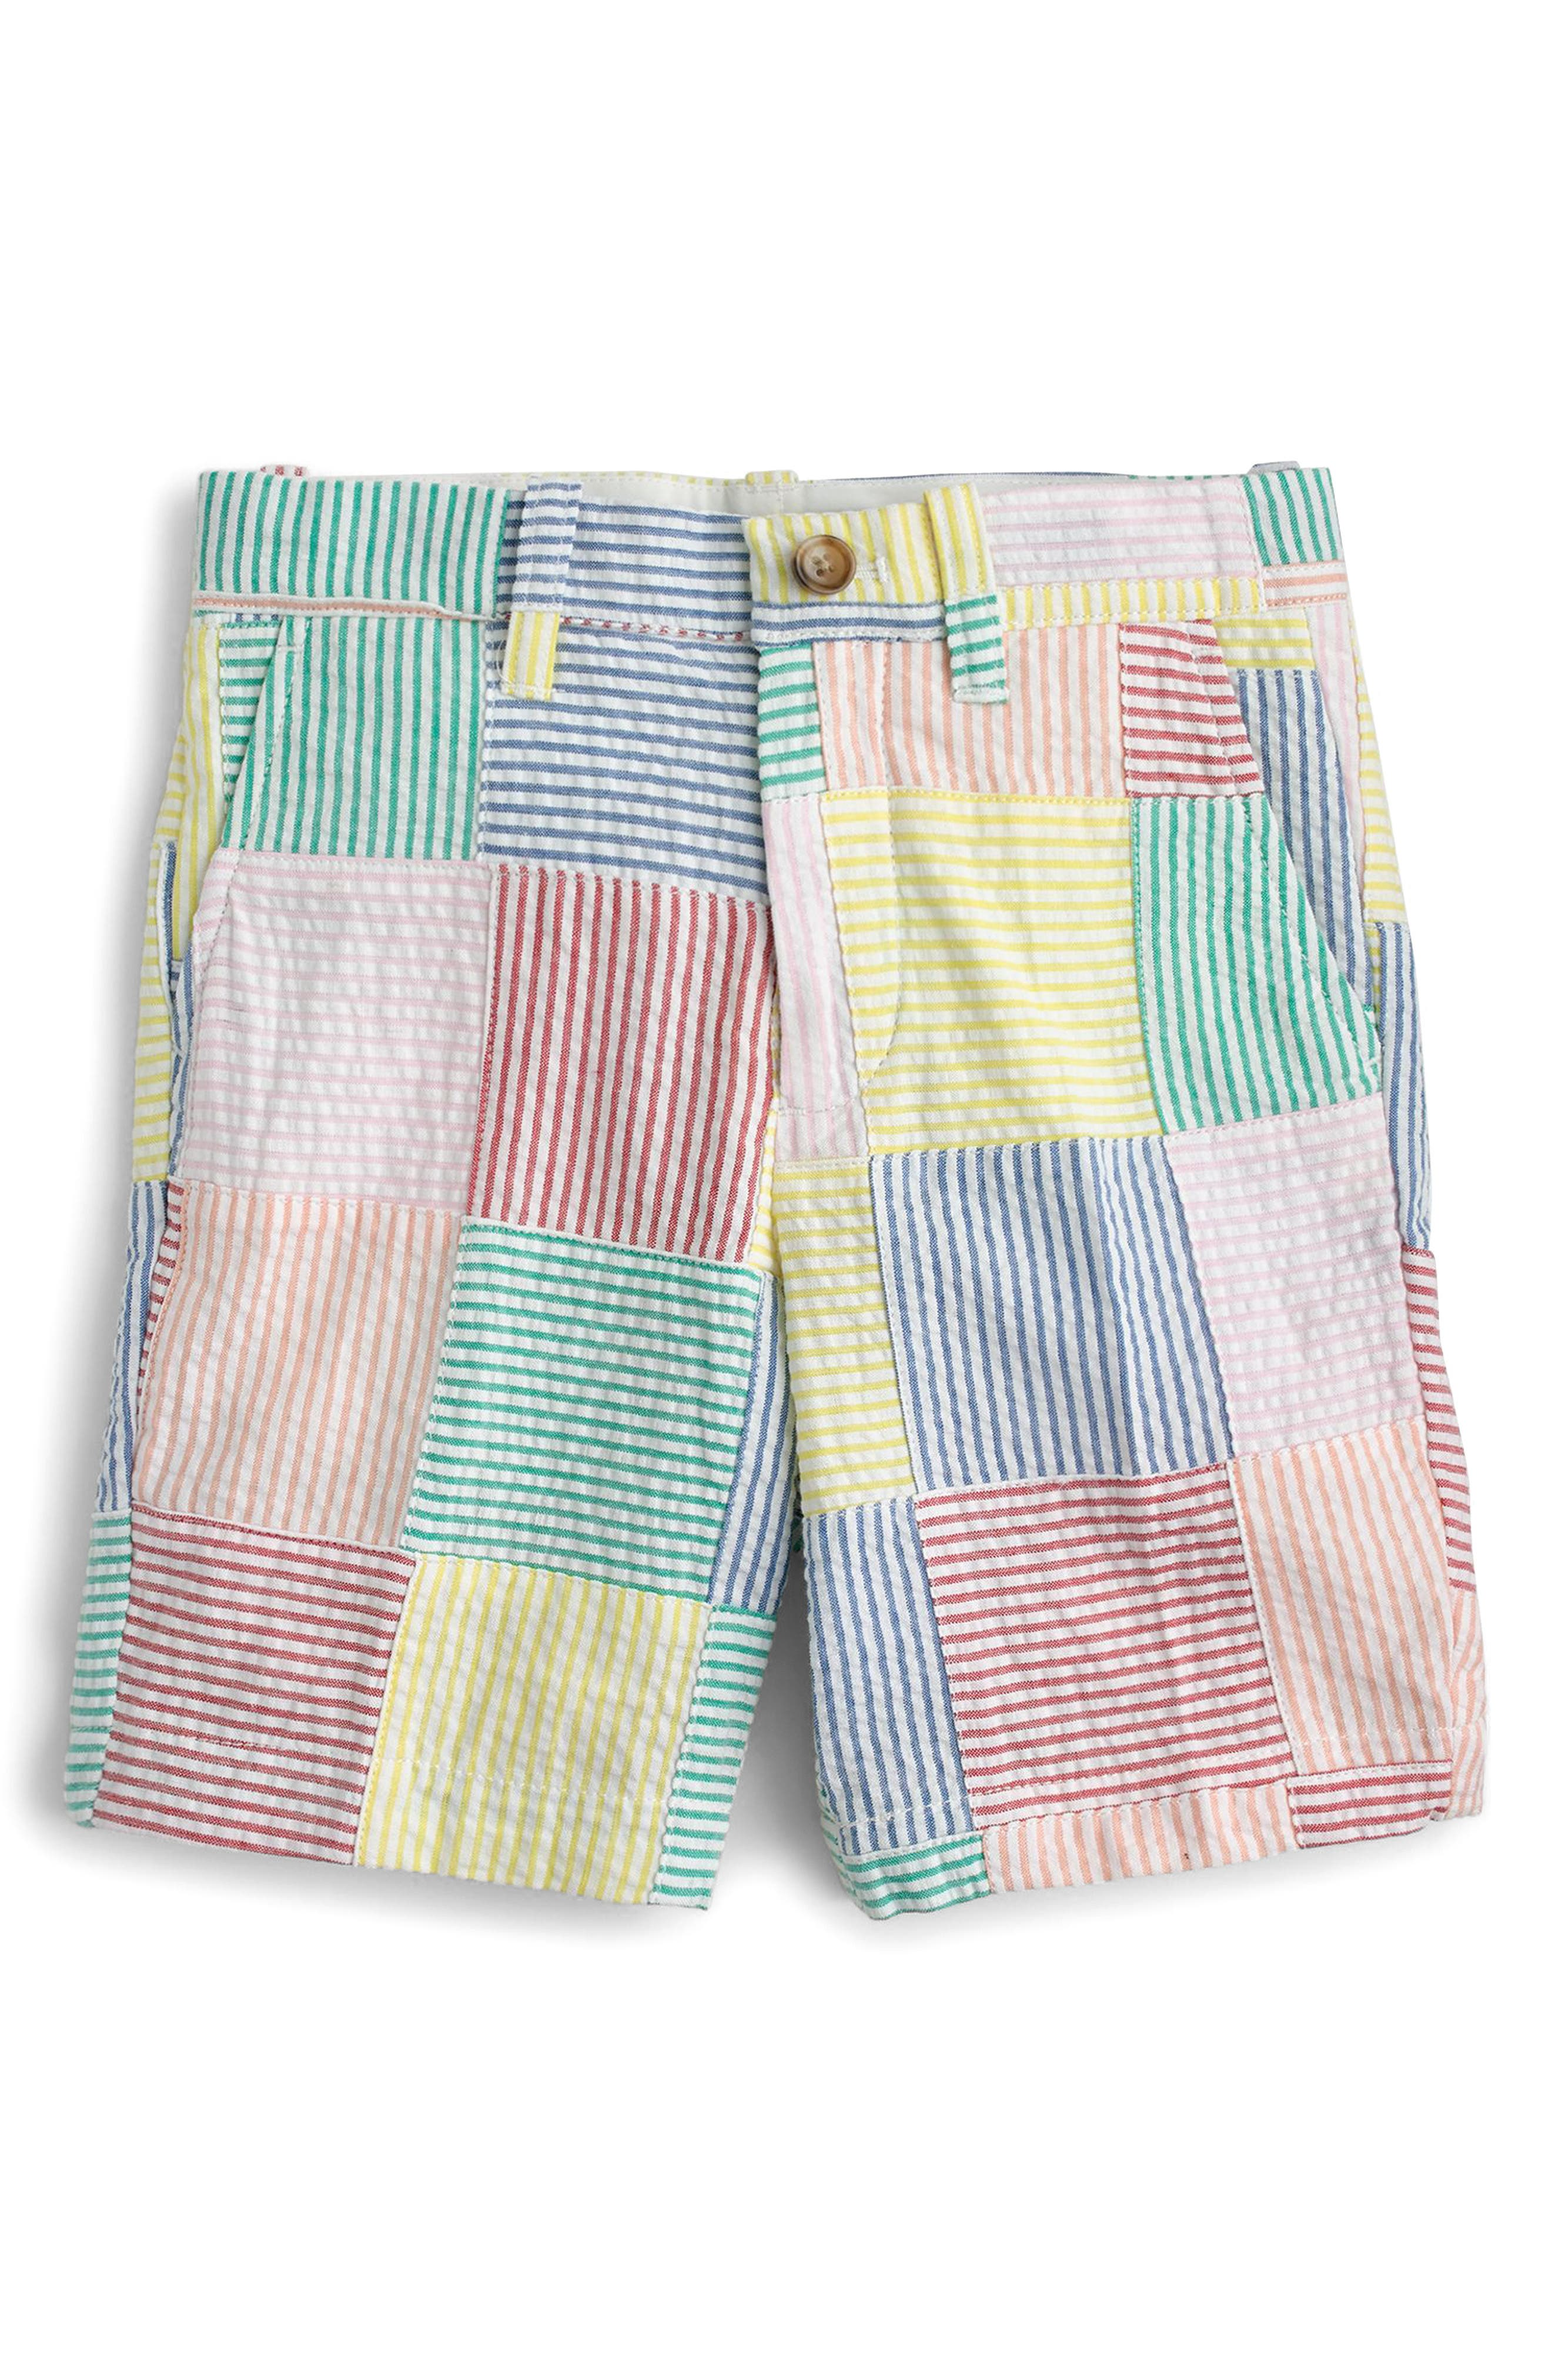 Crewcuts Stanton Patchwork Shorts,                             Main thumbnail 1, color,                             Ivory Multi